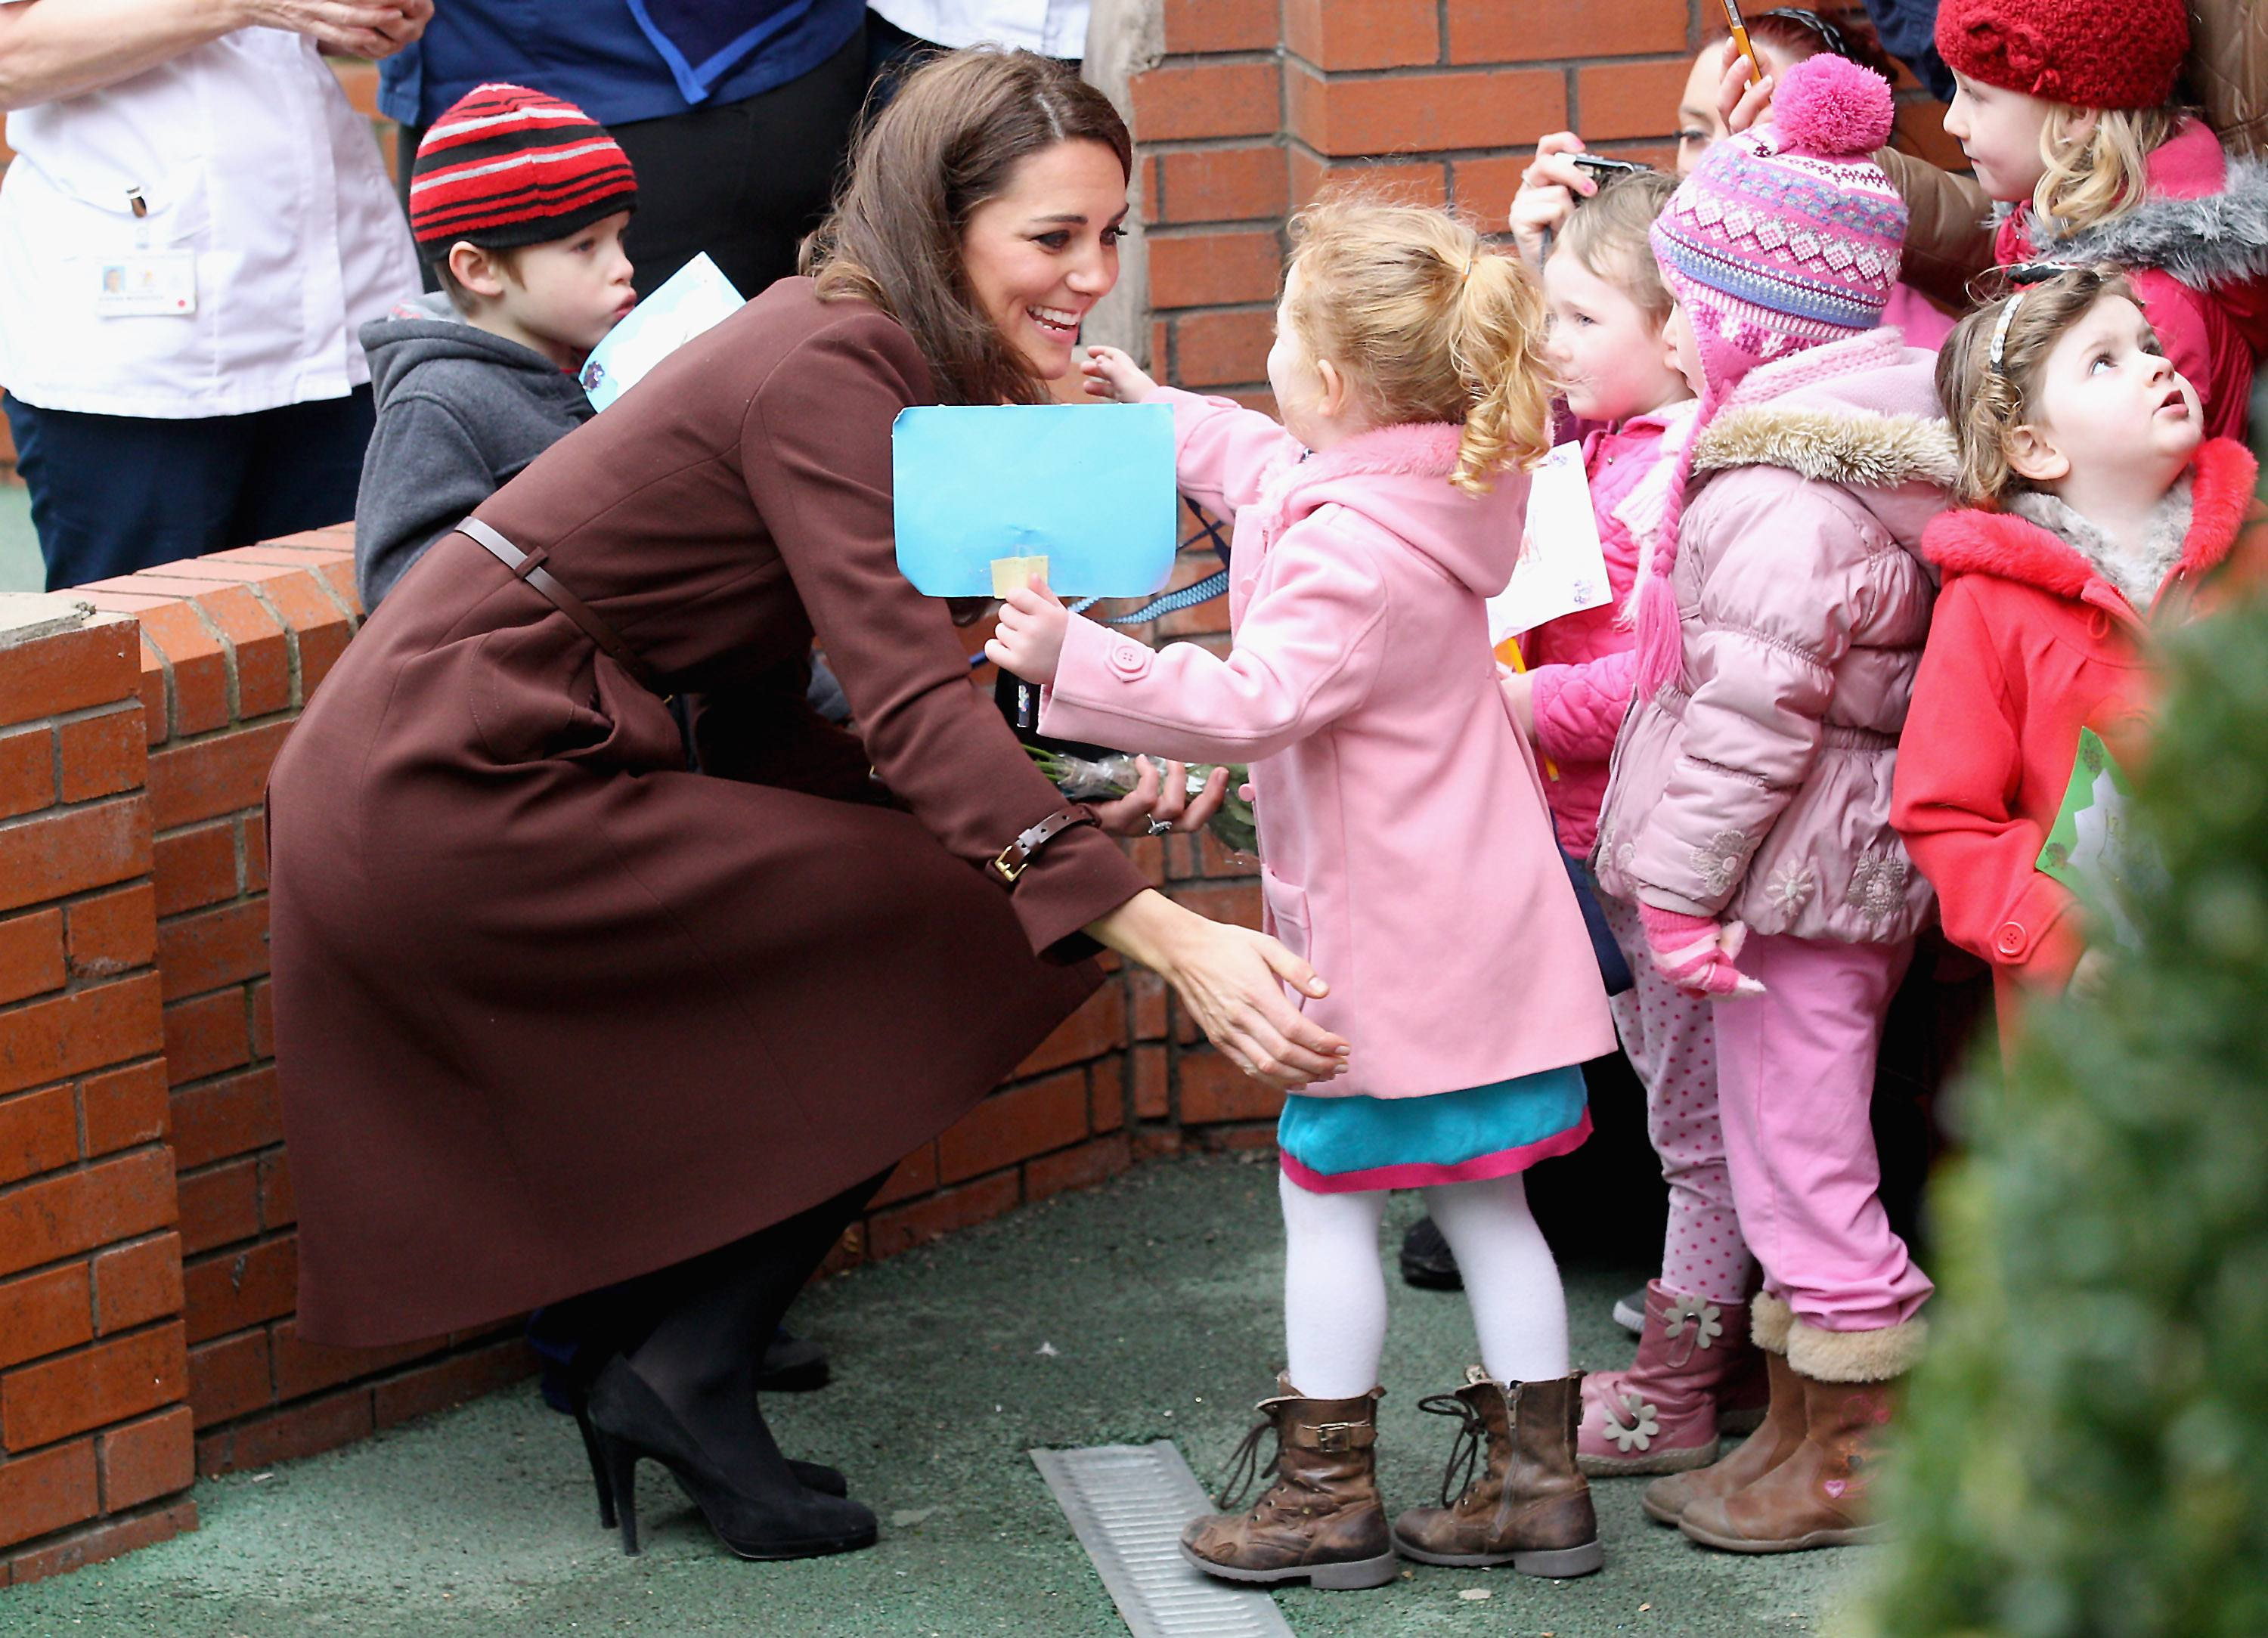 Catherine, Duchess of Cambridge hugs a young girl as she visits Alder Hey Children's NHS Foundation Trust on February 14, 2012 in Liverpool, England. The Duchess has spent the day in Liverpool and arrived at Alder Hey Hospital after a visit to 'The Brink'.